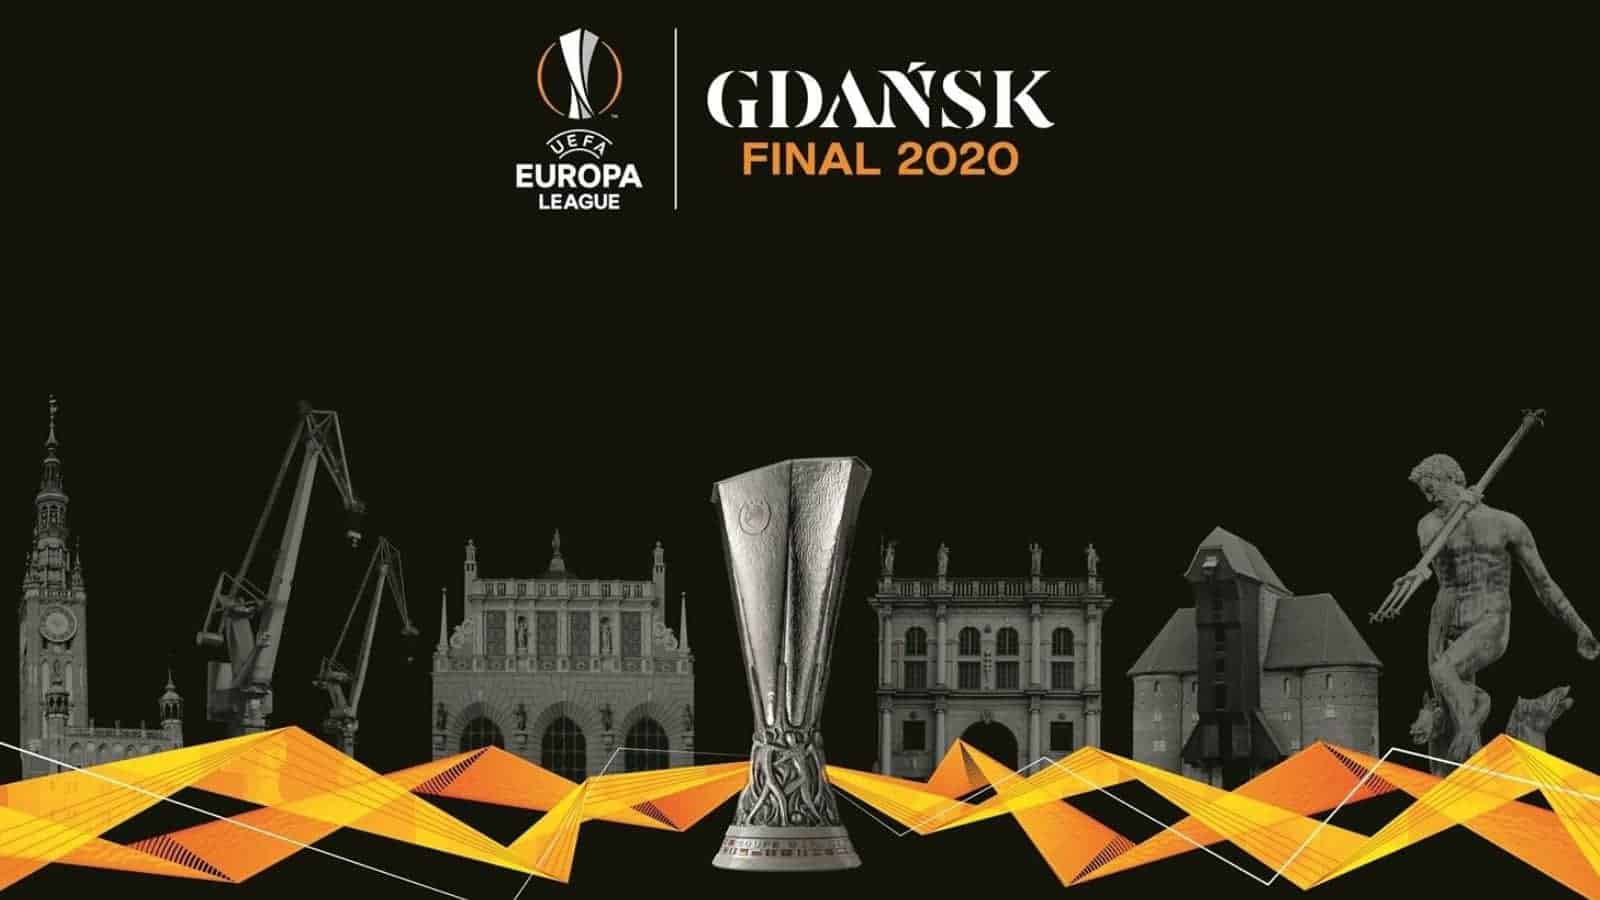 Road to Gdansk